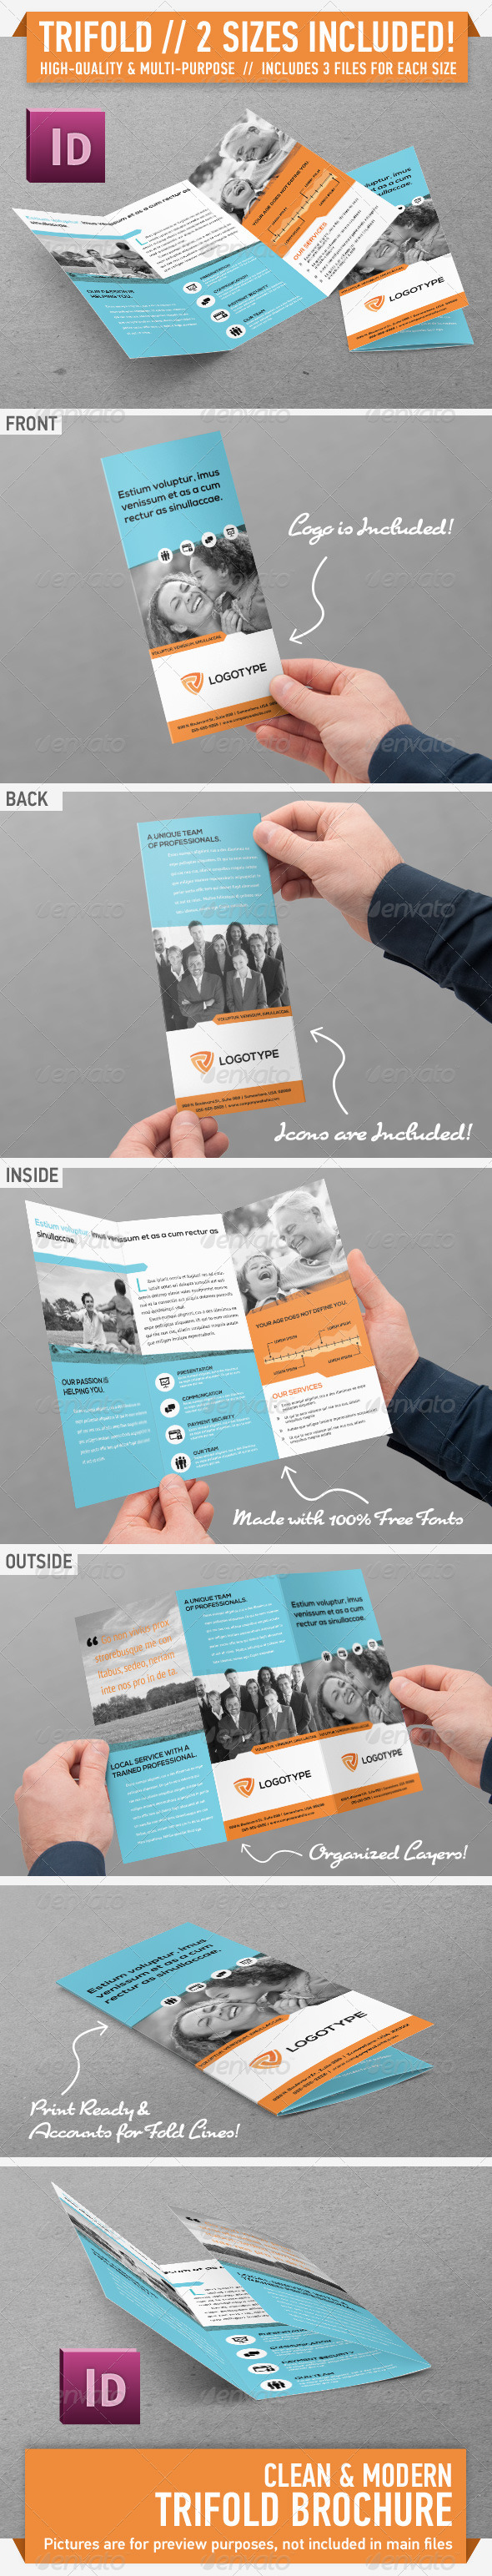 Clean Modern Trifold Brochure - Vol. 2 - Corporate Brochures